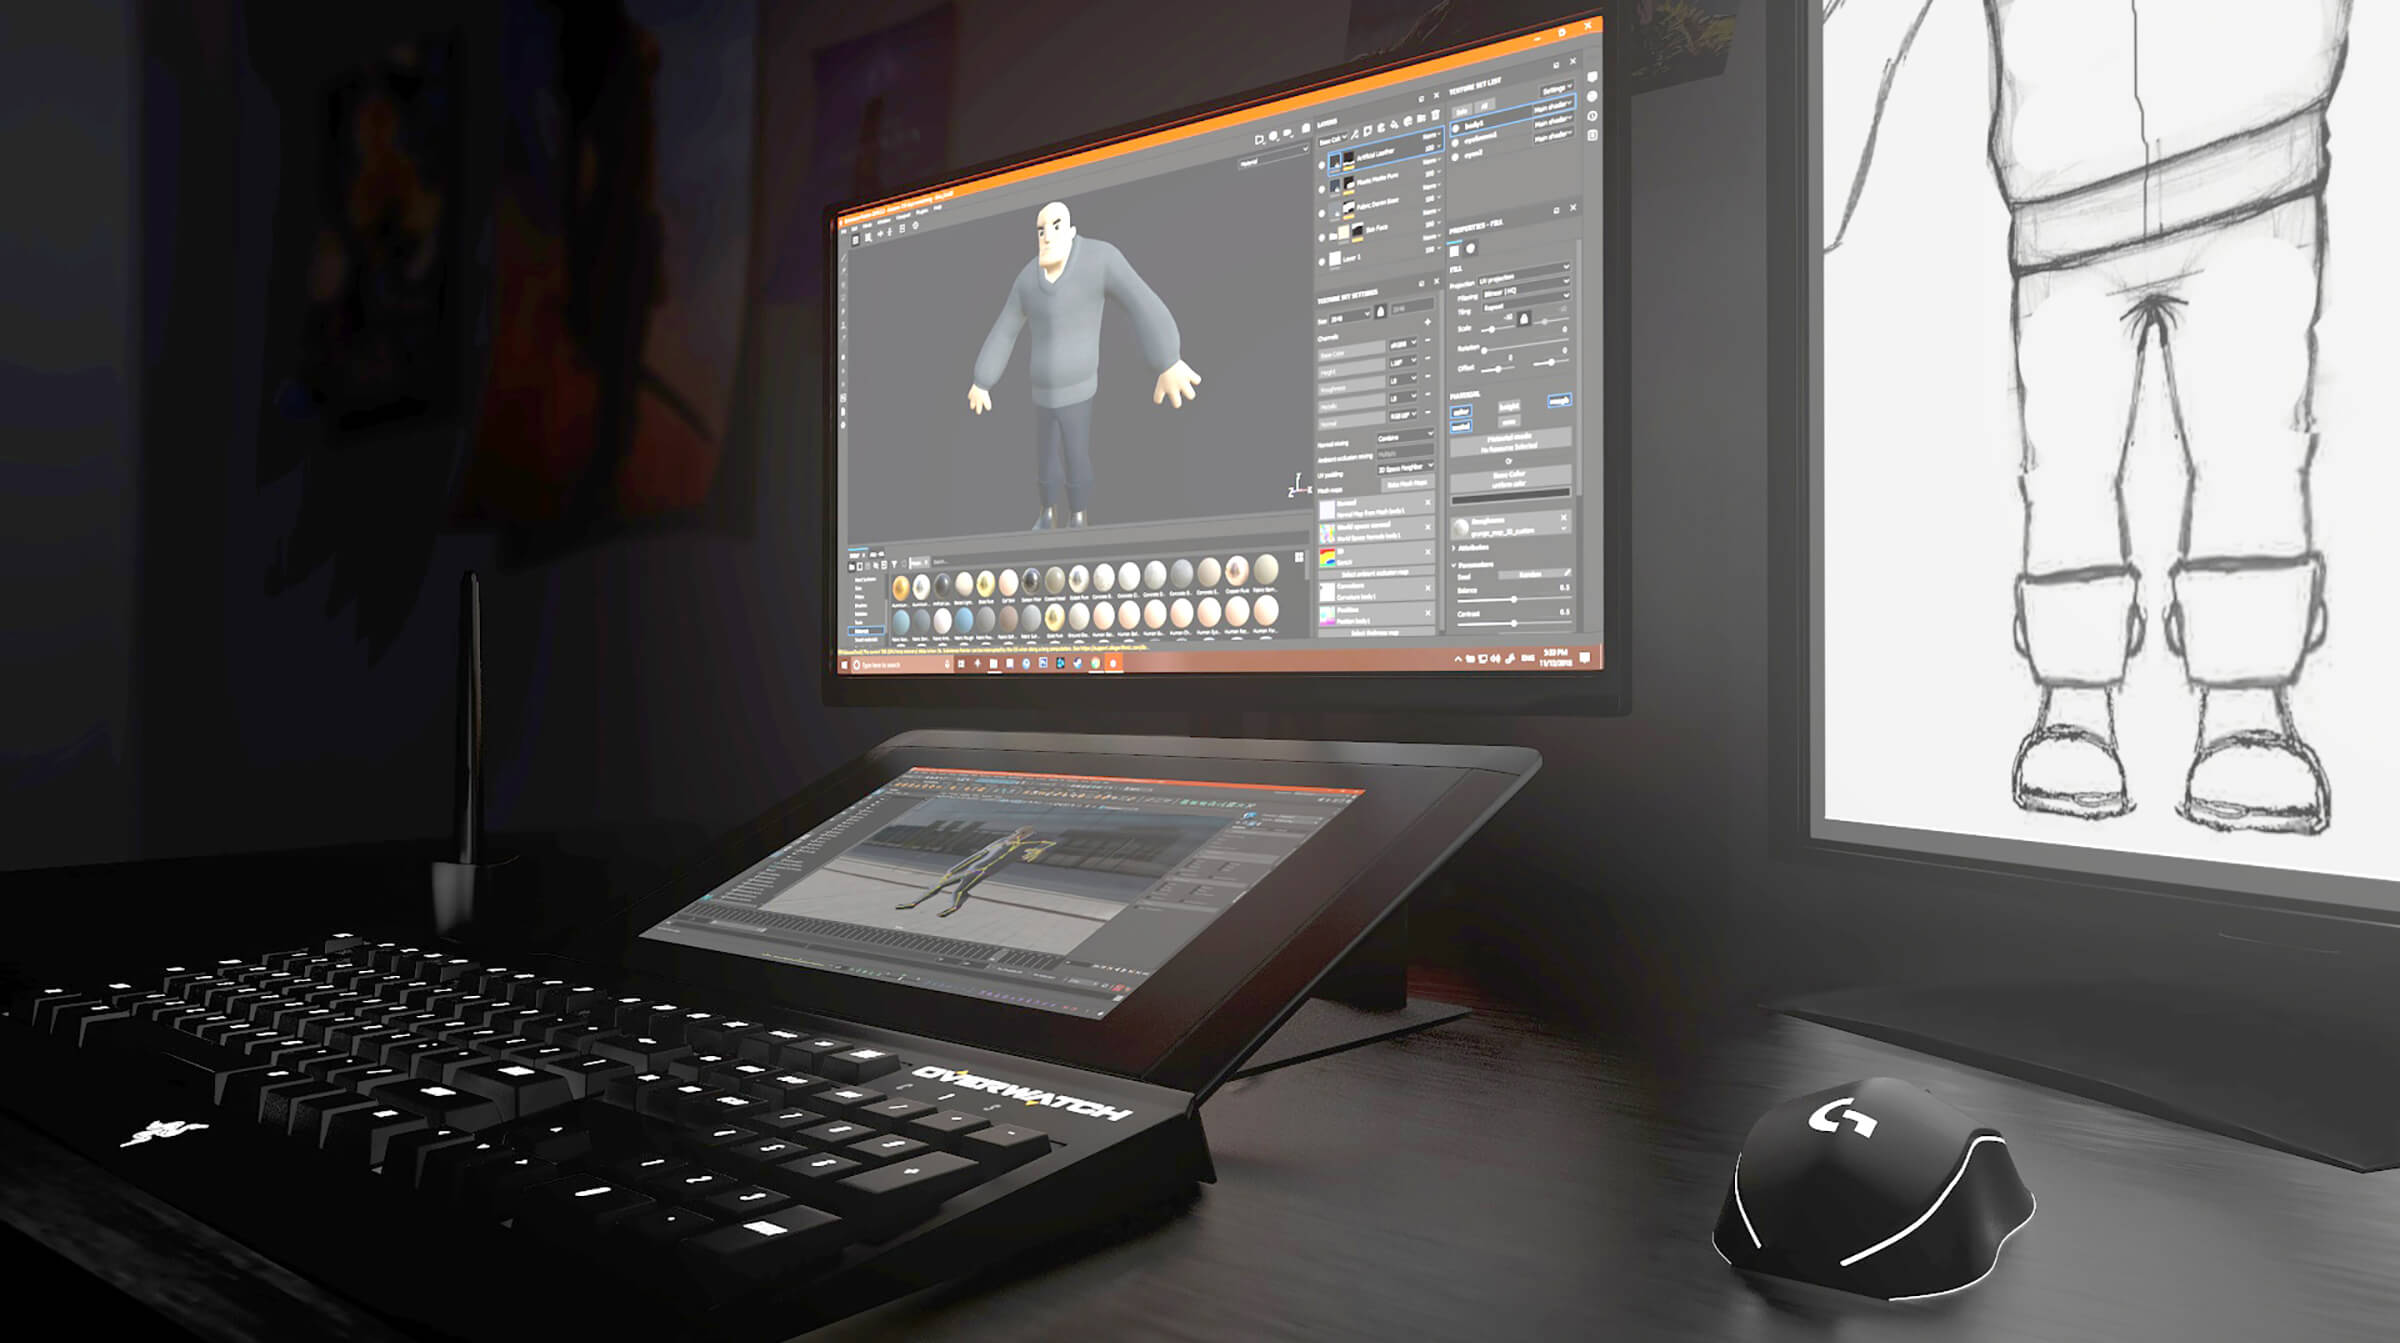 A 3D modeling project on a tablet computer hooked up to a monitor